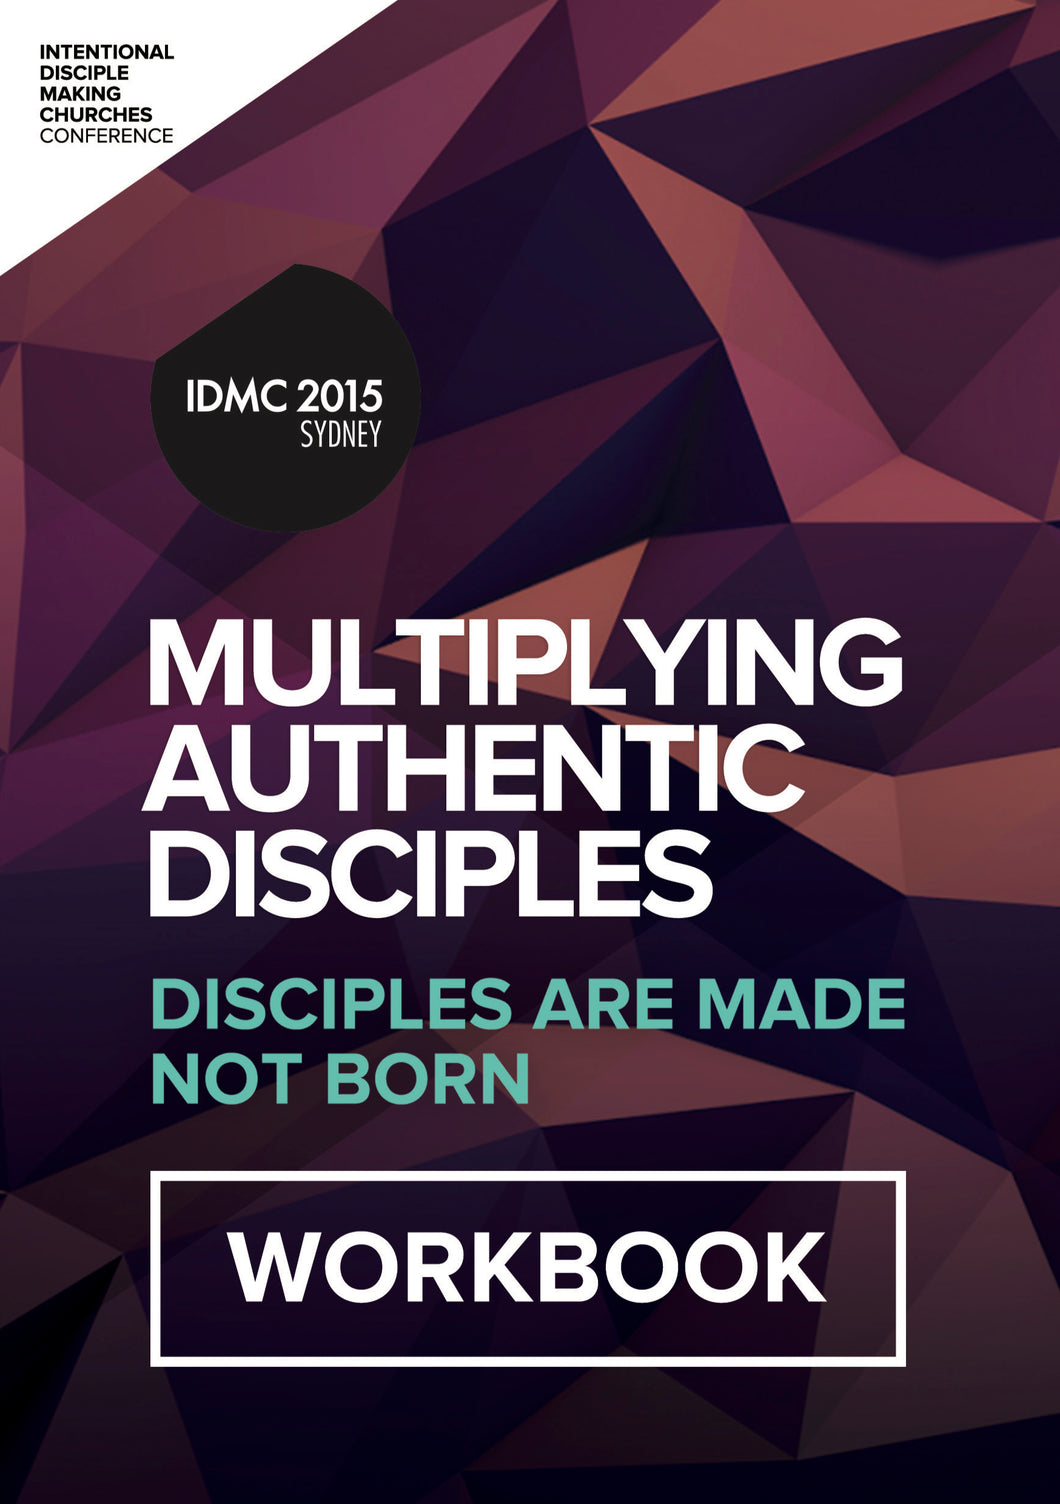 2015 IDMC Conference: Multiplying Authentic Disciples Workbook